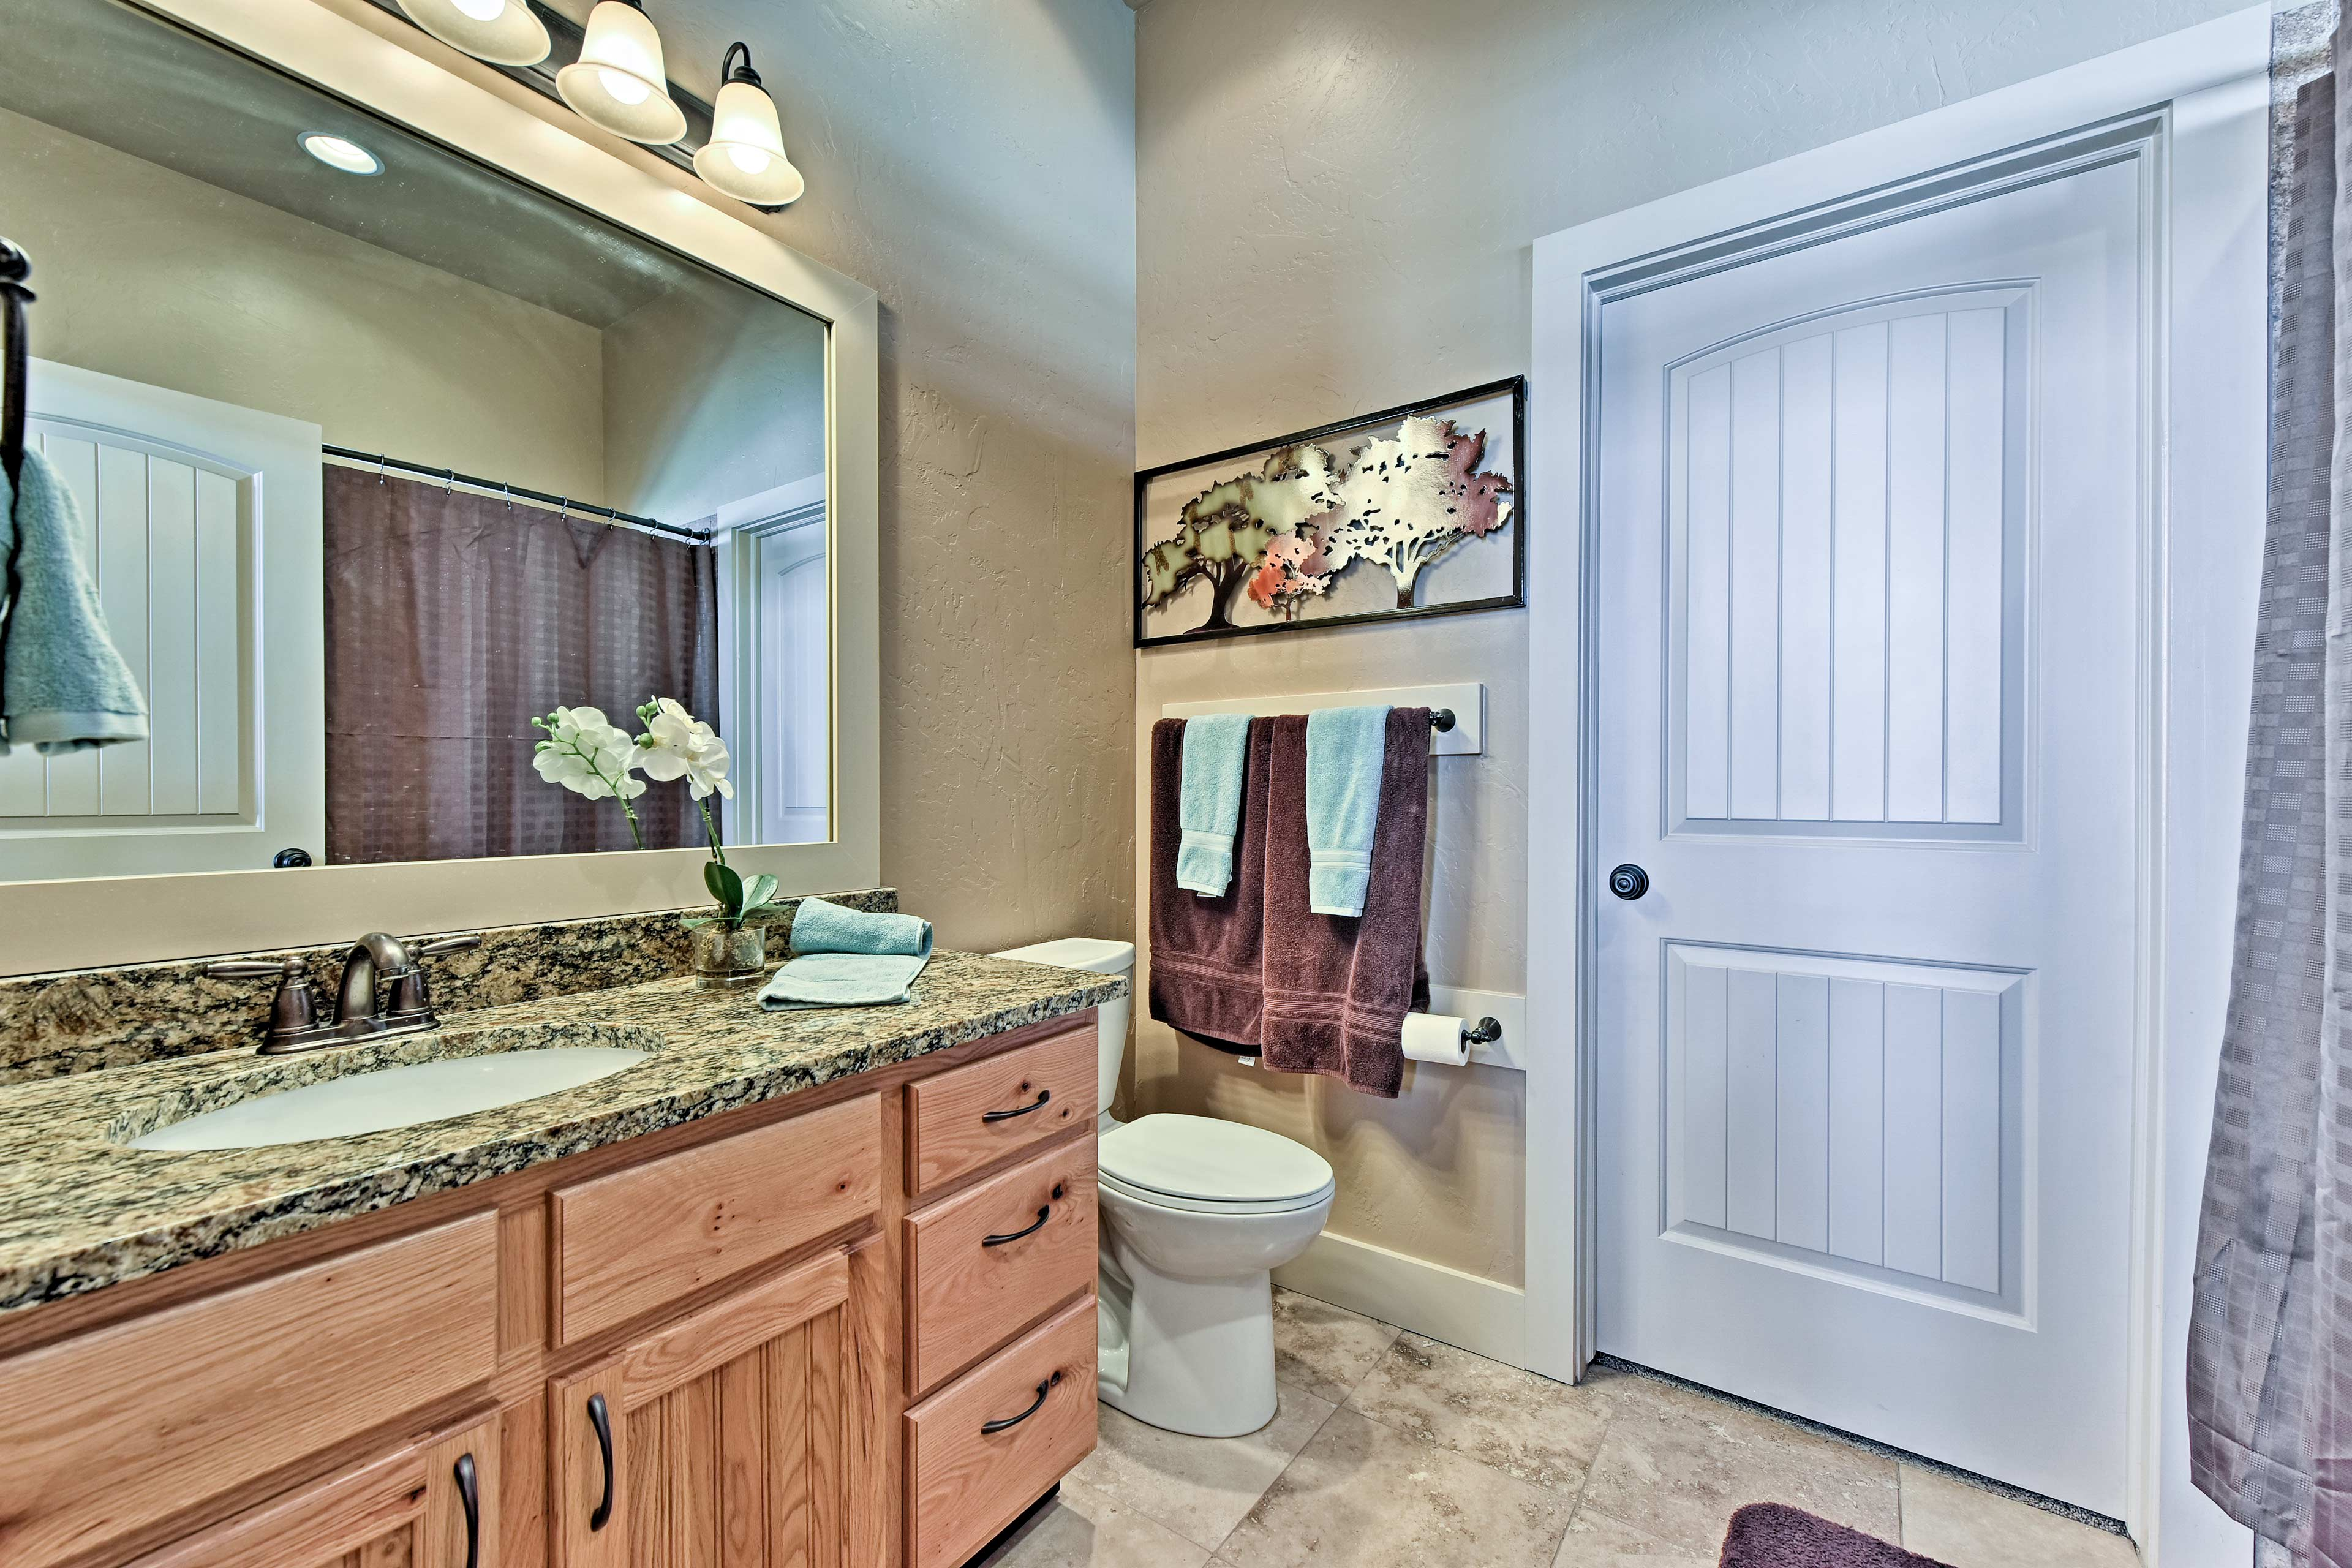 This home features 4 full bathrooms.